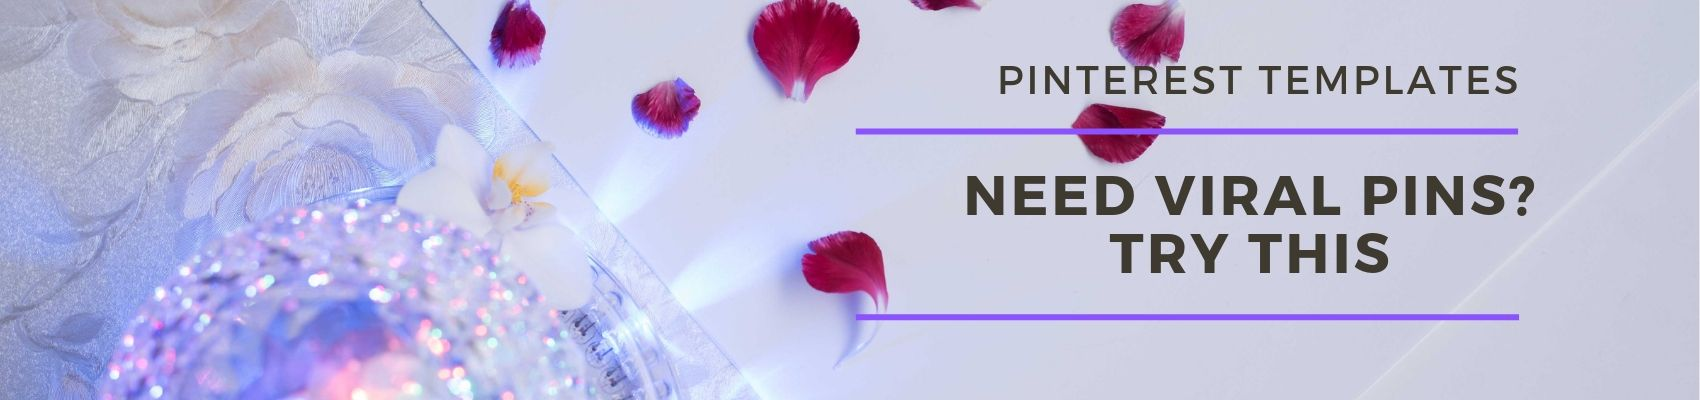 Pinterest Templates Canva